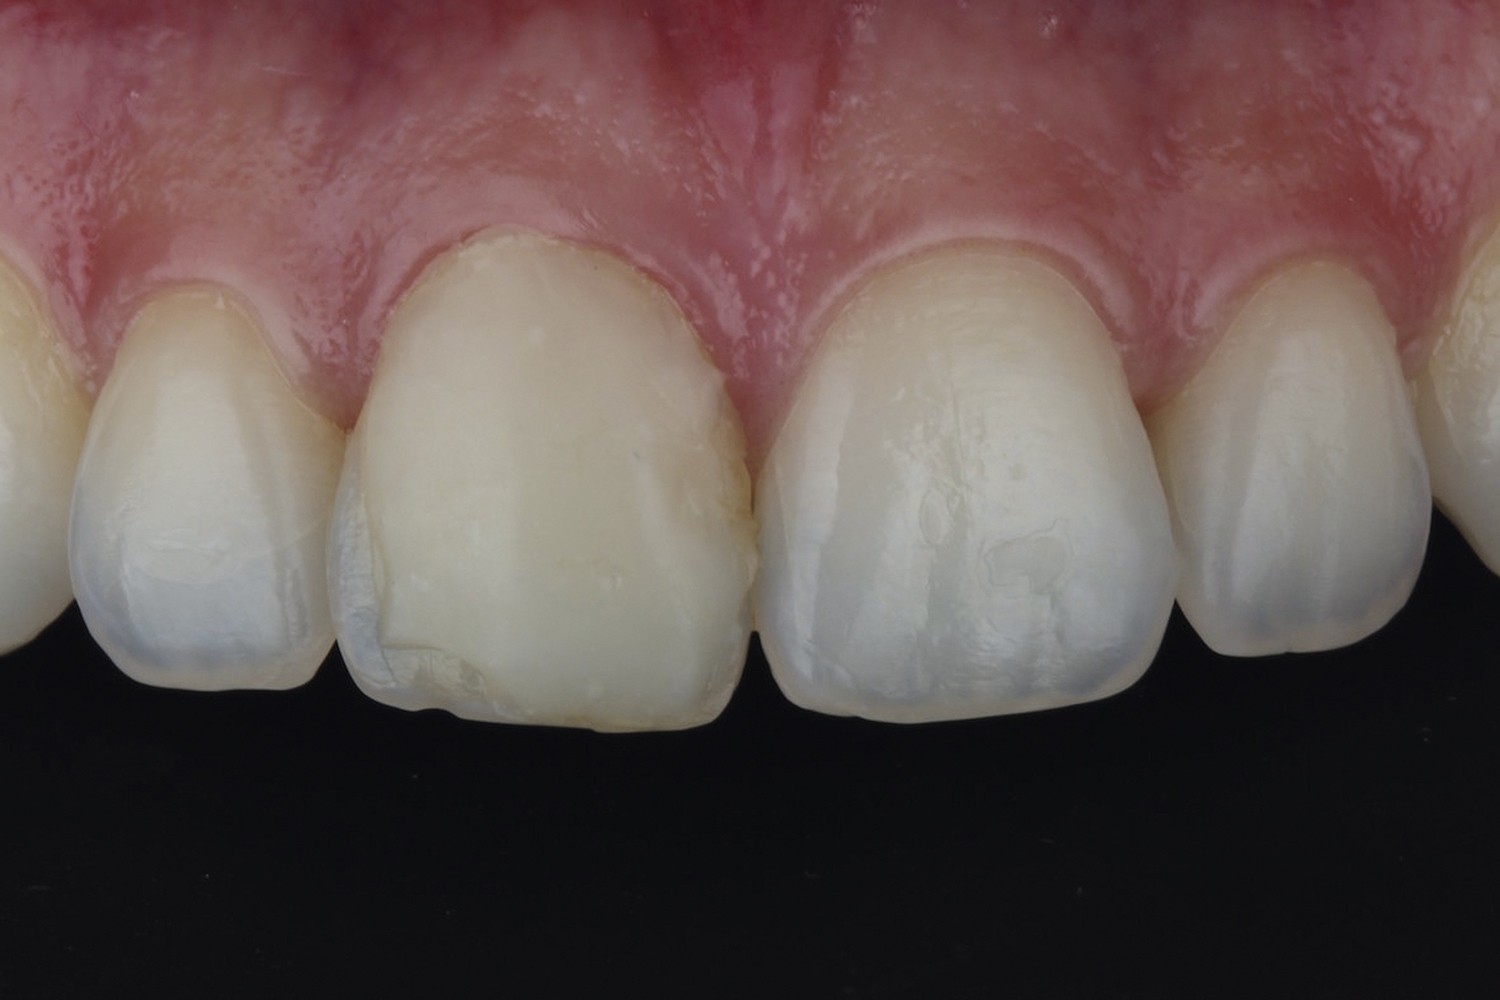 Replacement of single composite resin in a maxillary central incisor: Case report